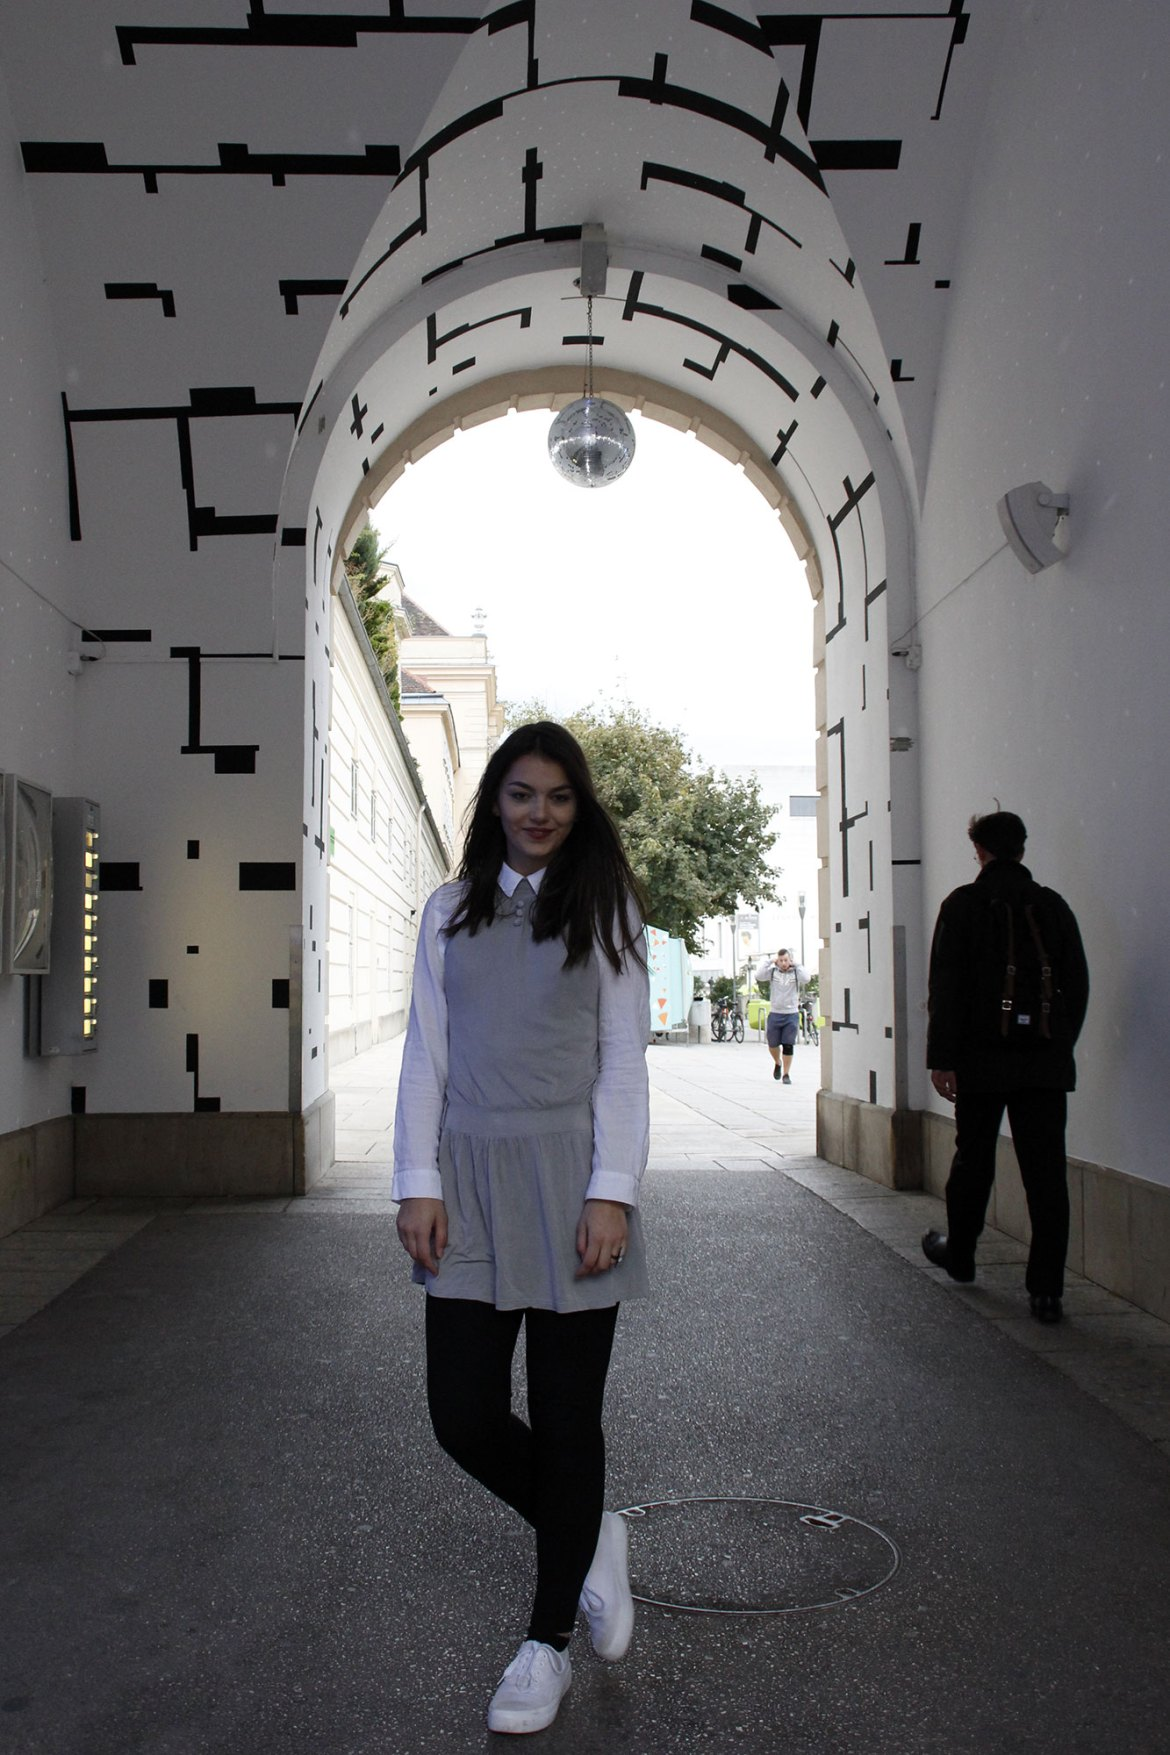 Dorie standing in a black white tunnel, waring a grey dress, a white blouse, black legging and white shoes